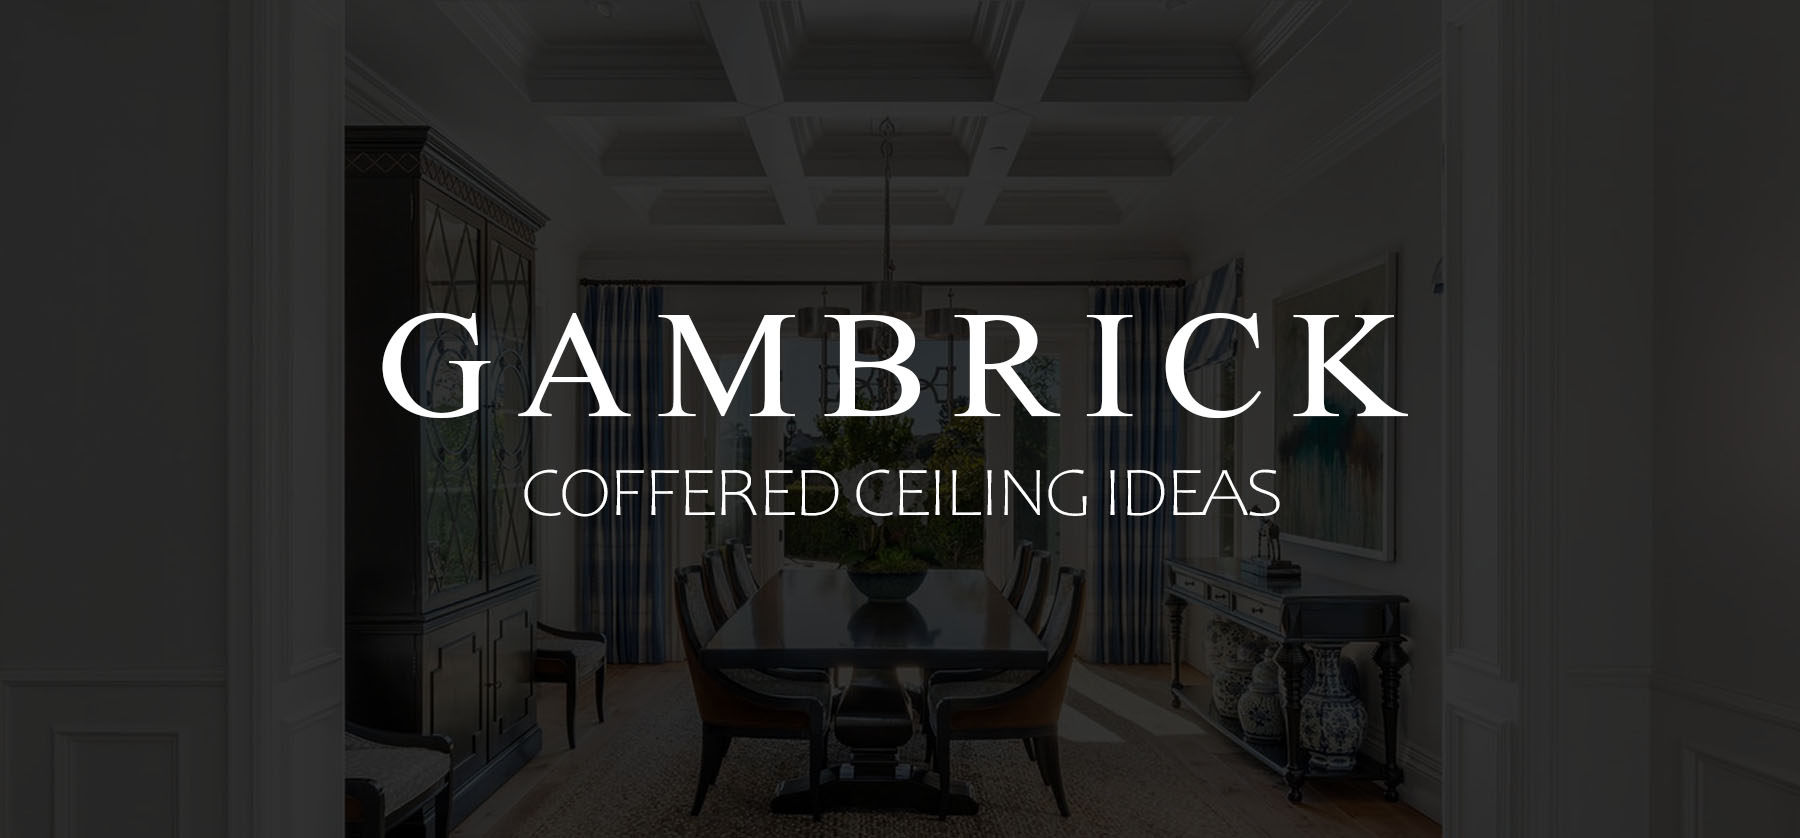 coffered ceiling ideas banner pic